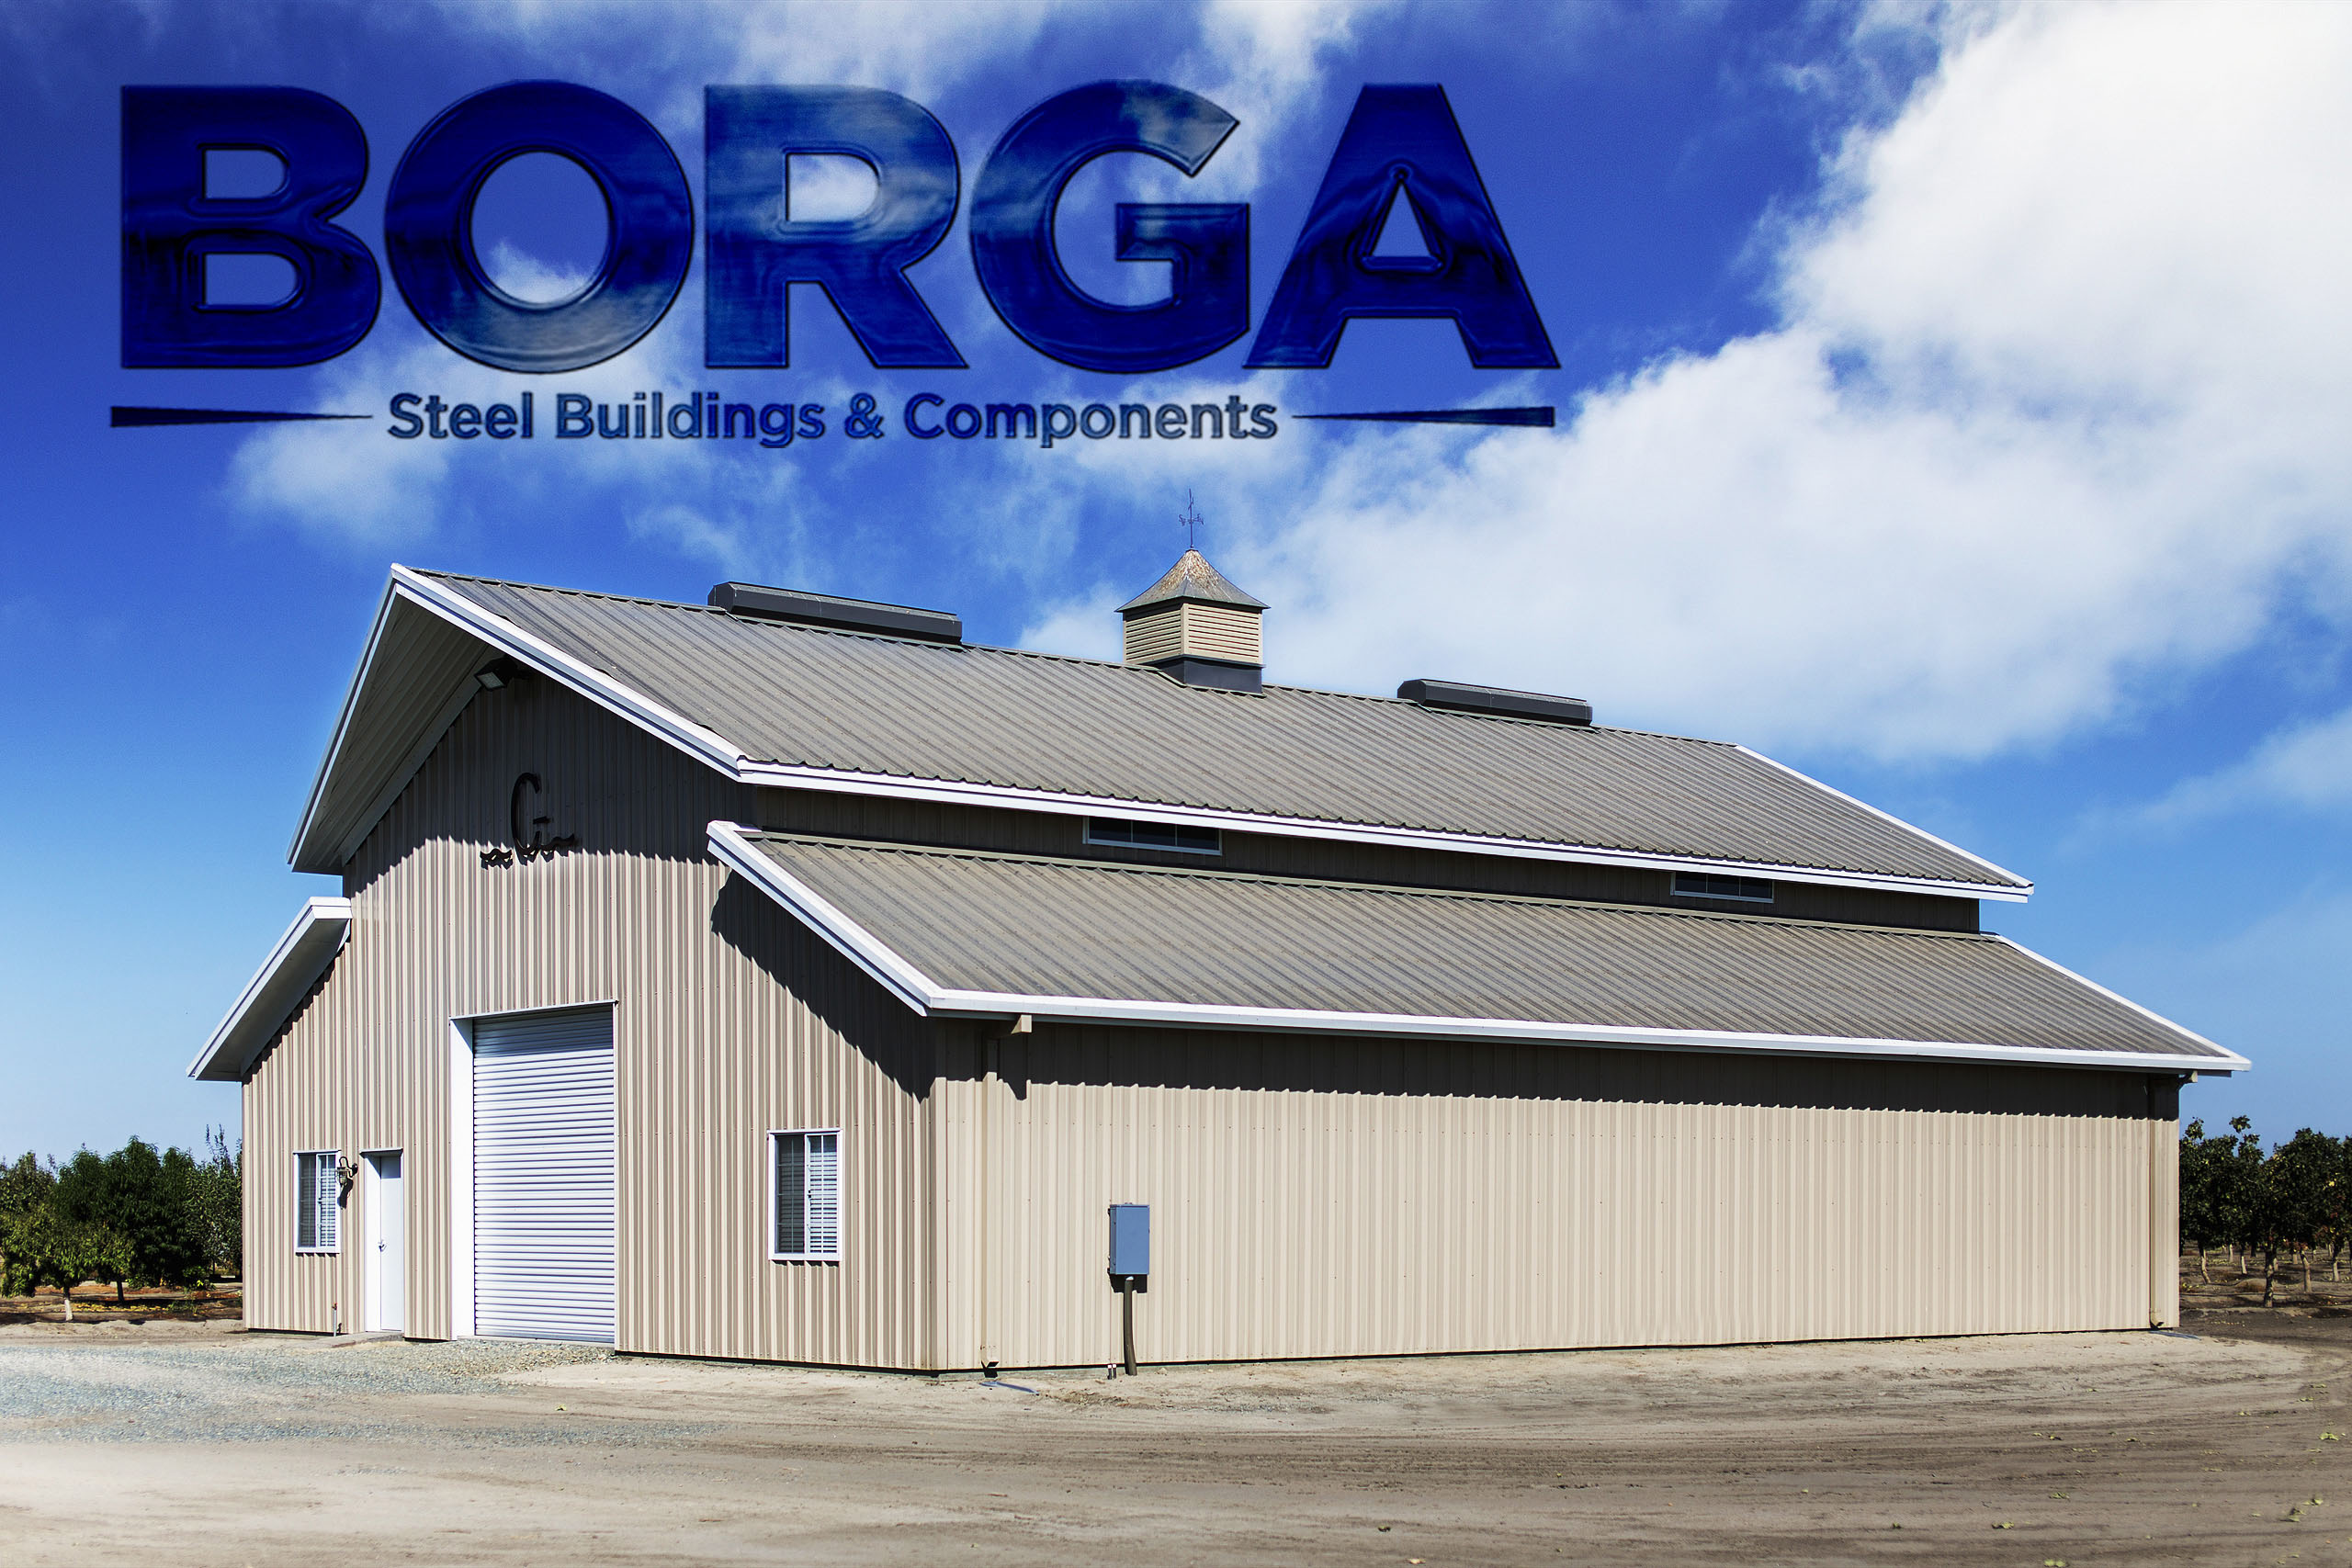 Borga Steel Buildings And Components